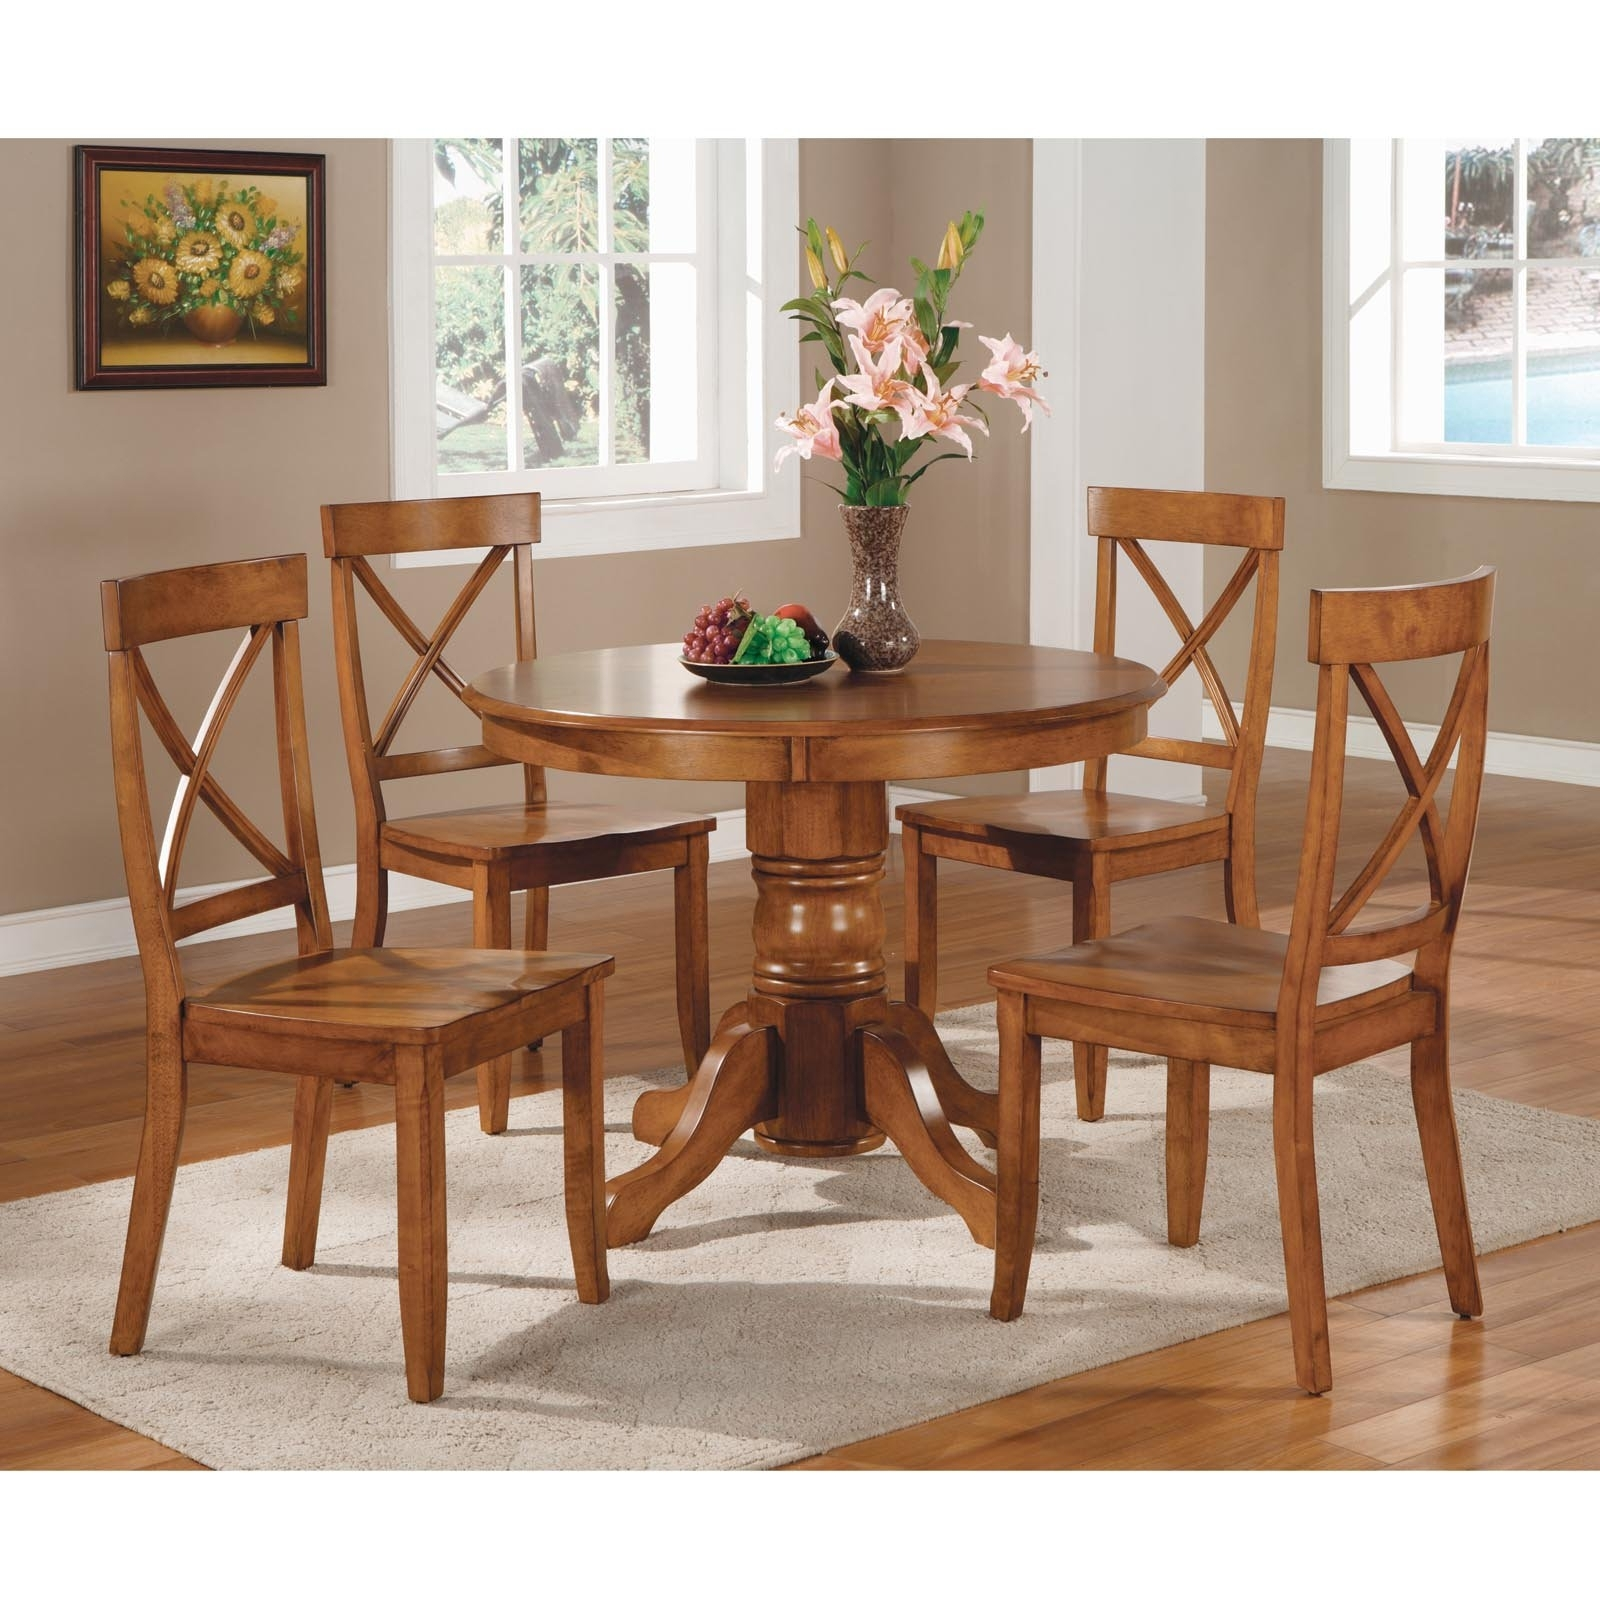 Home Styles Pedestal Dining Table, Cottage Oak – Walmart With Regard To Widely Used Pedestal Dining Tables And Chairs (View 7 of 25)